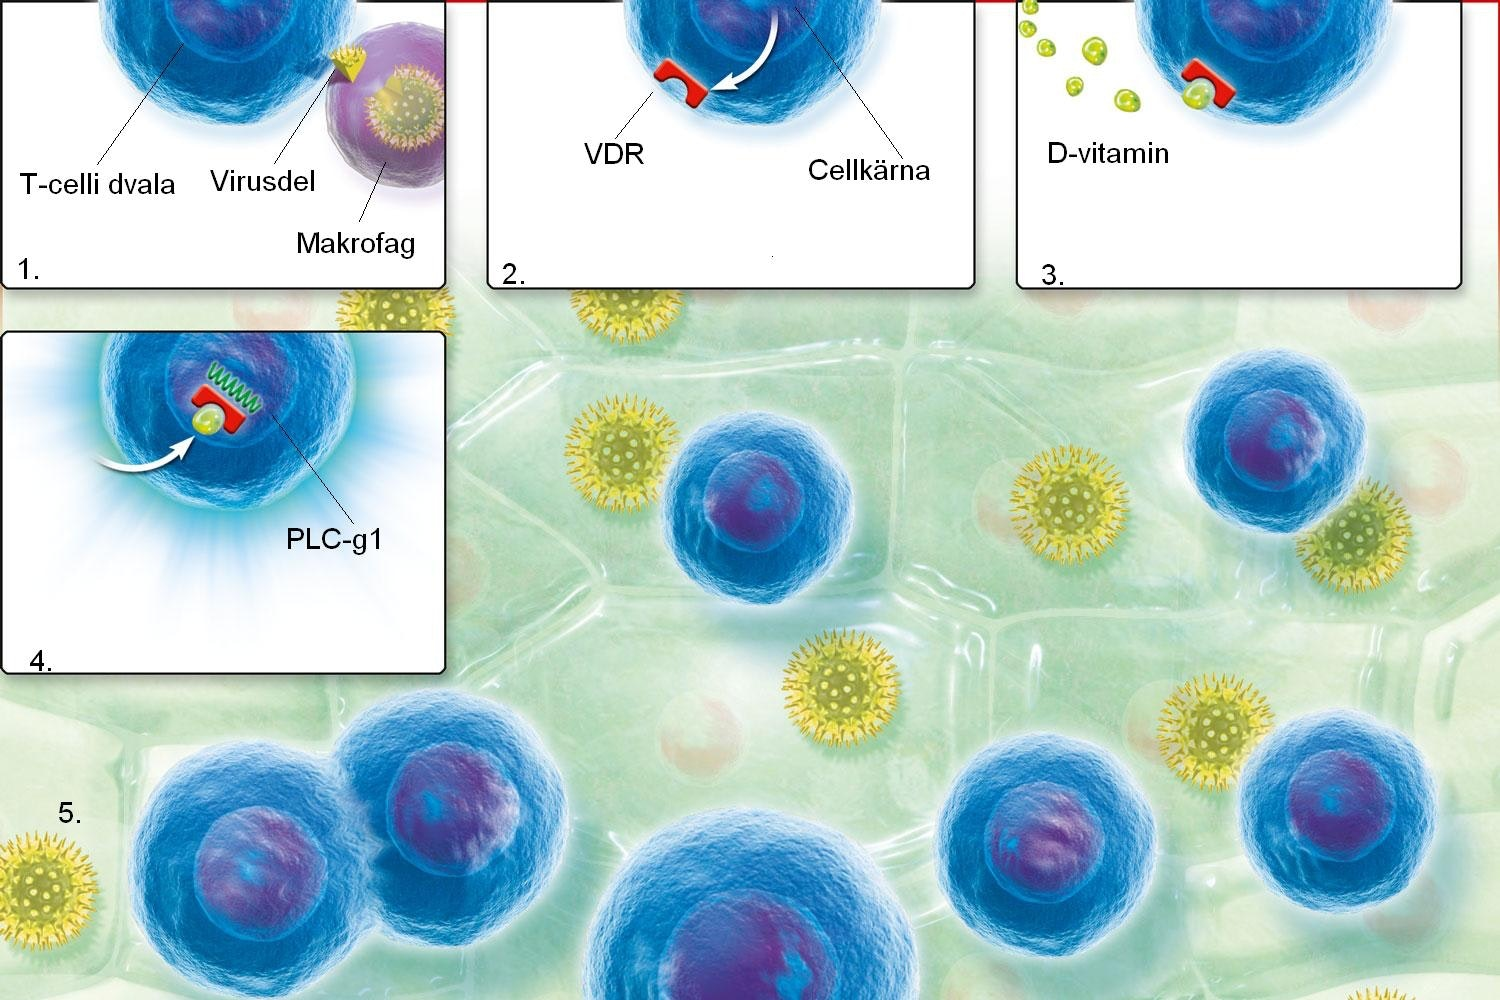 T-cells and vitamin D